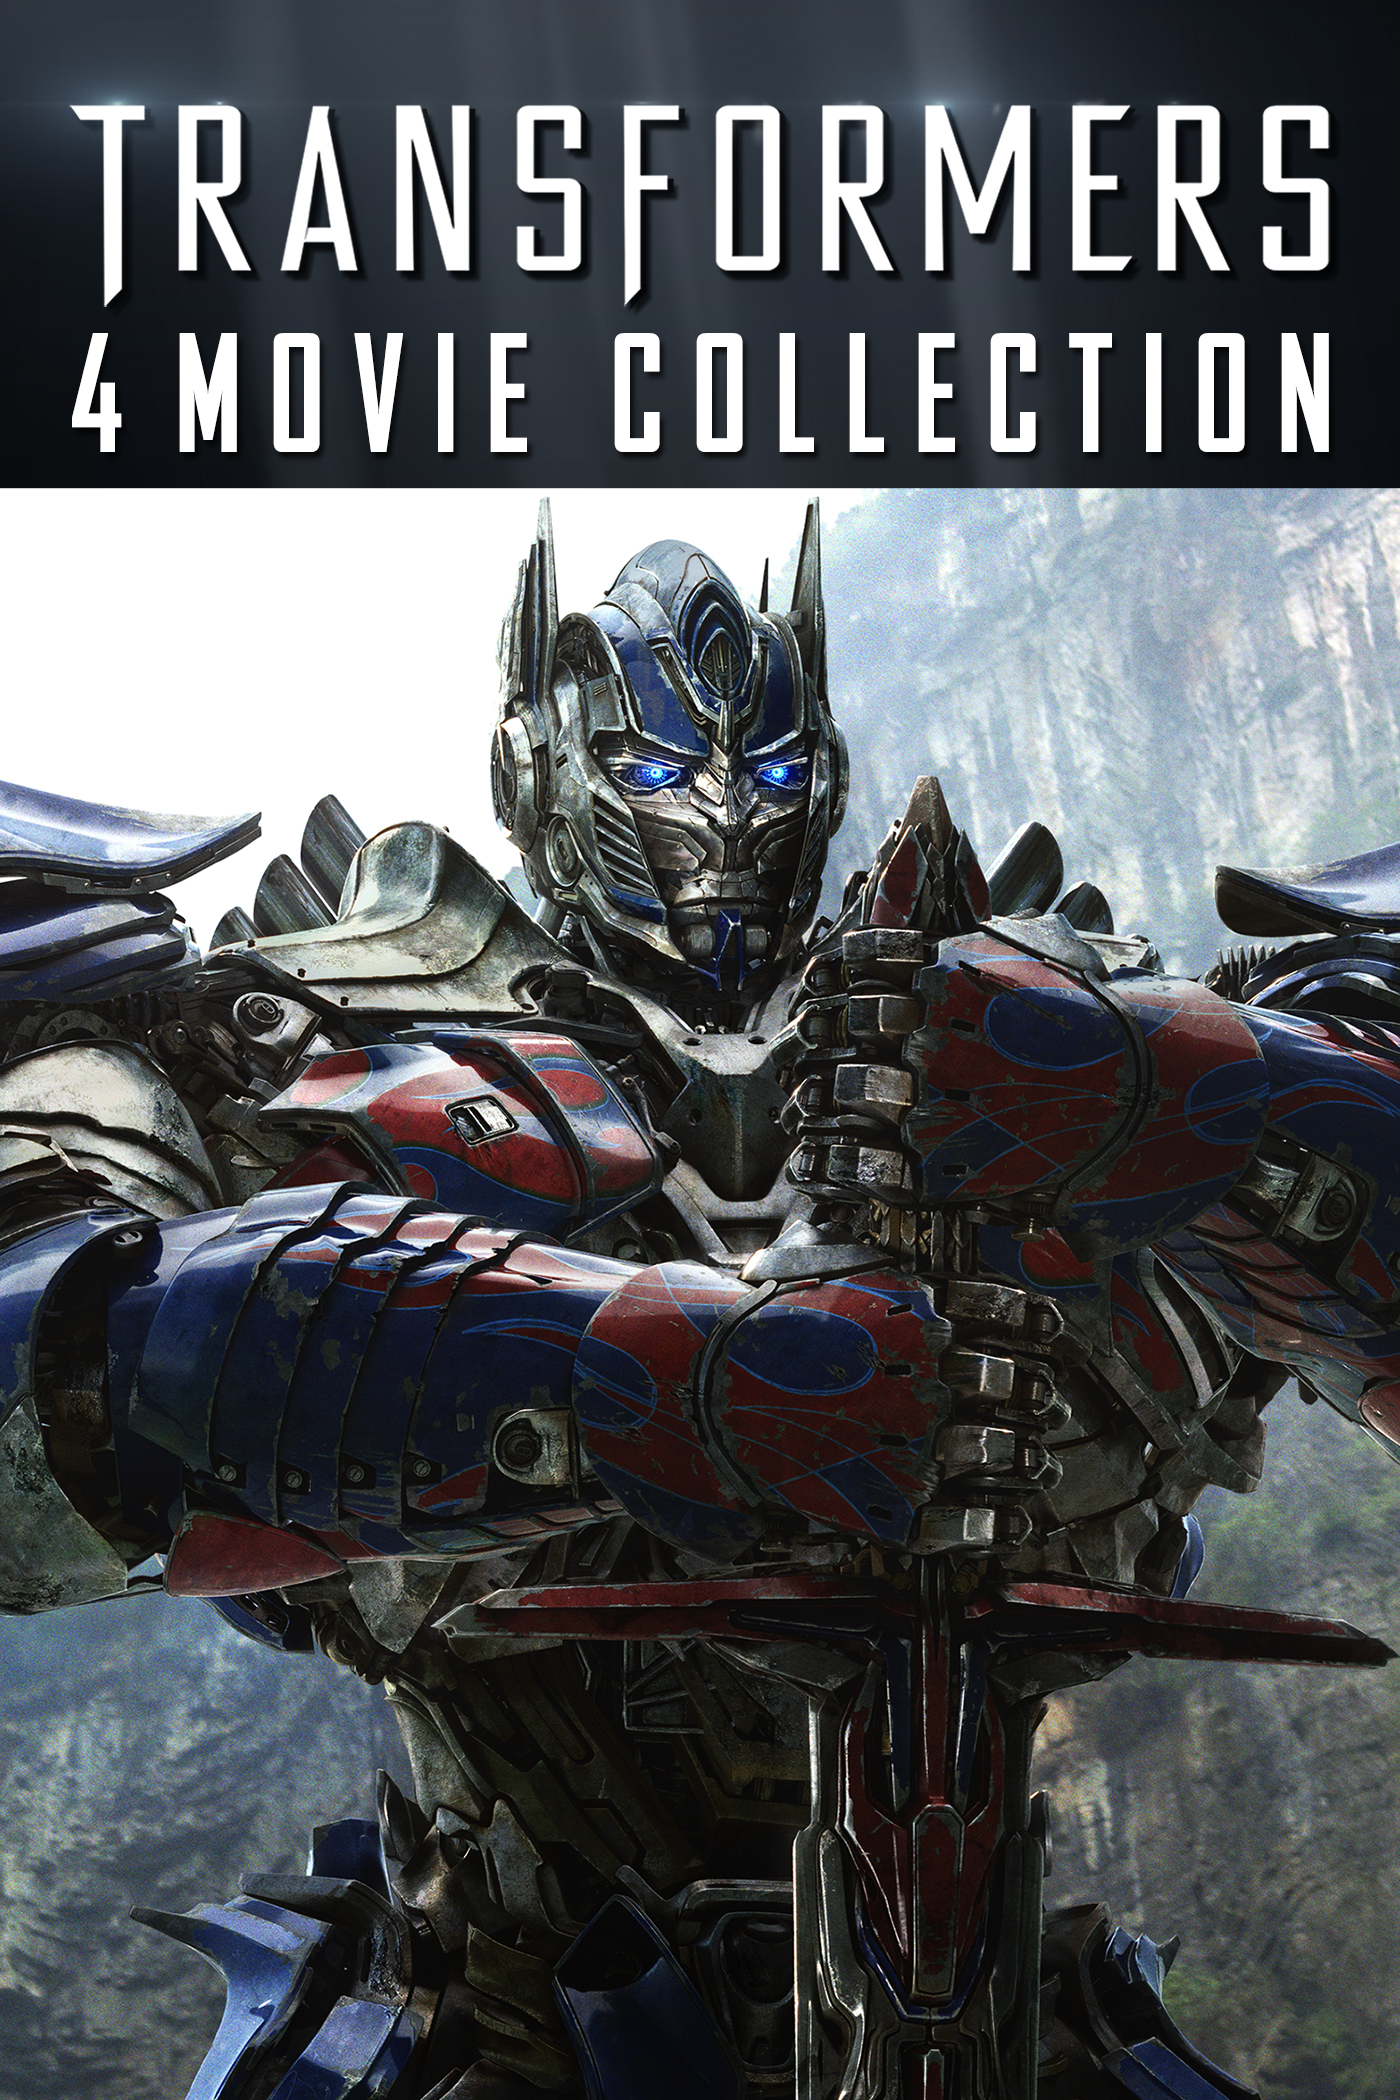 The Transformers Collection stream